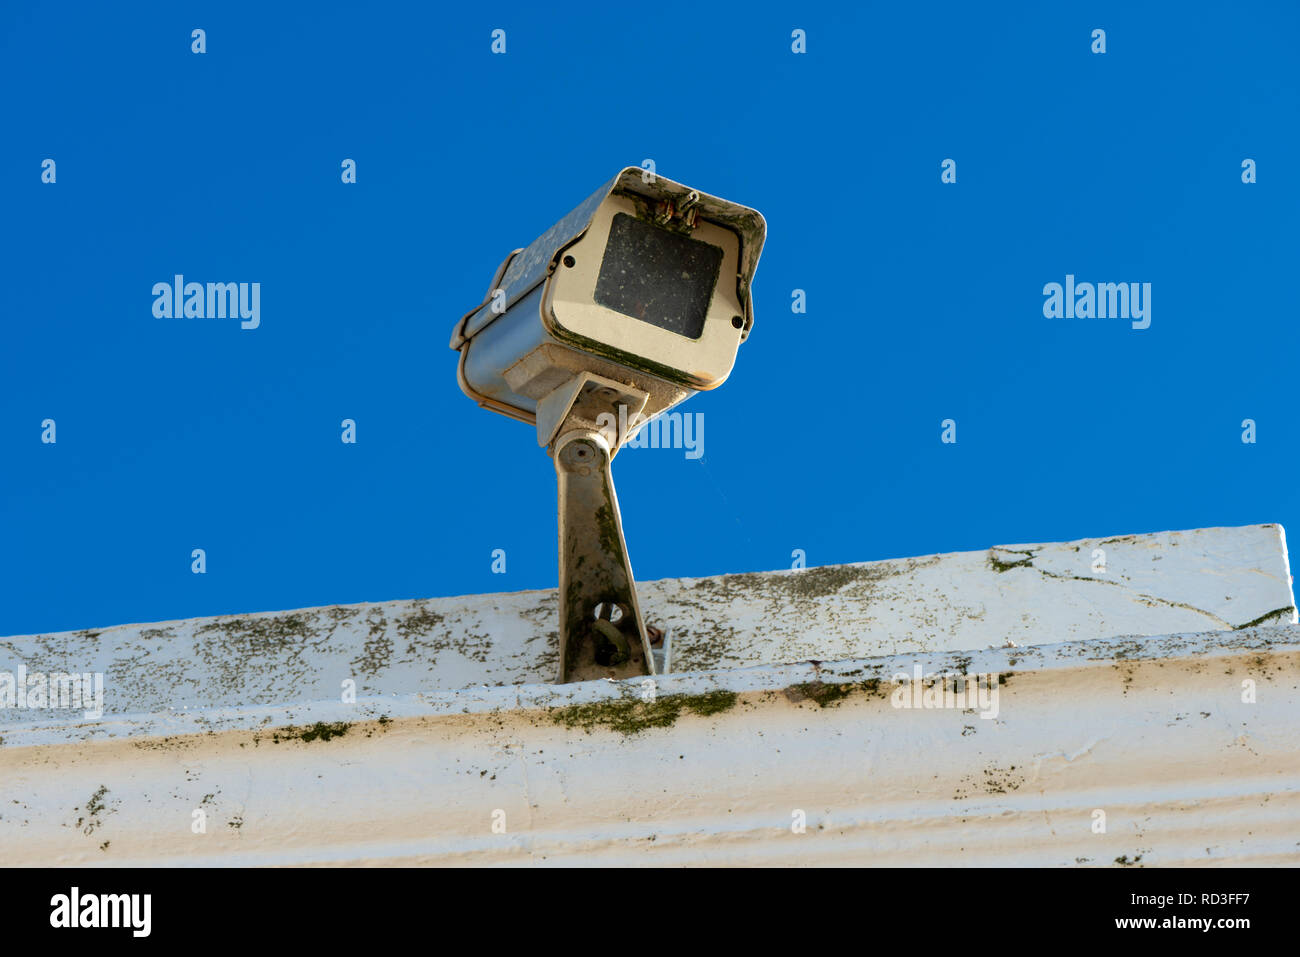 A CCTV security camera on a building. - Stock Image